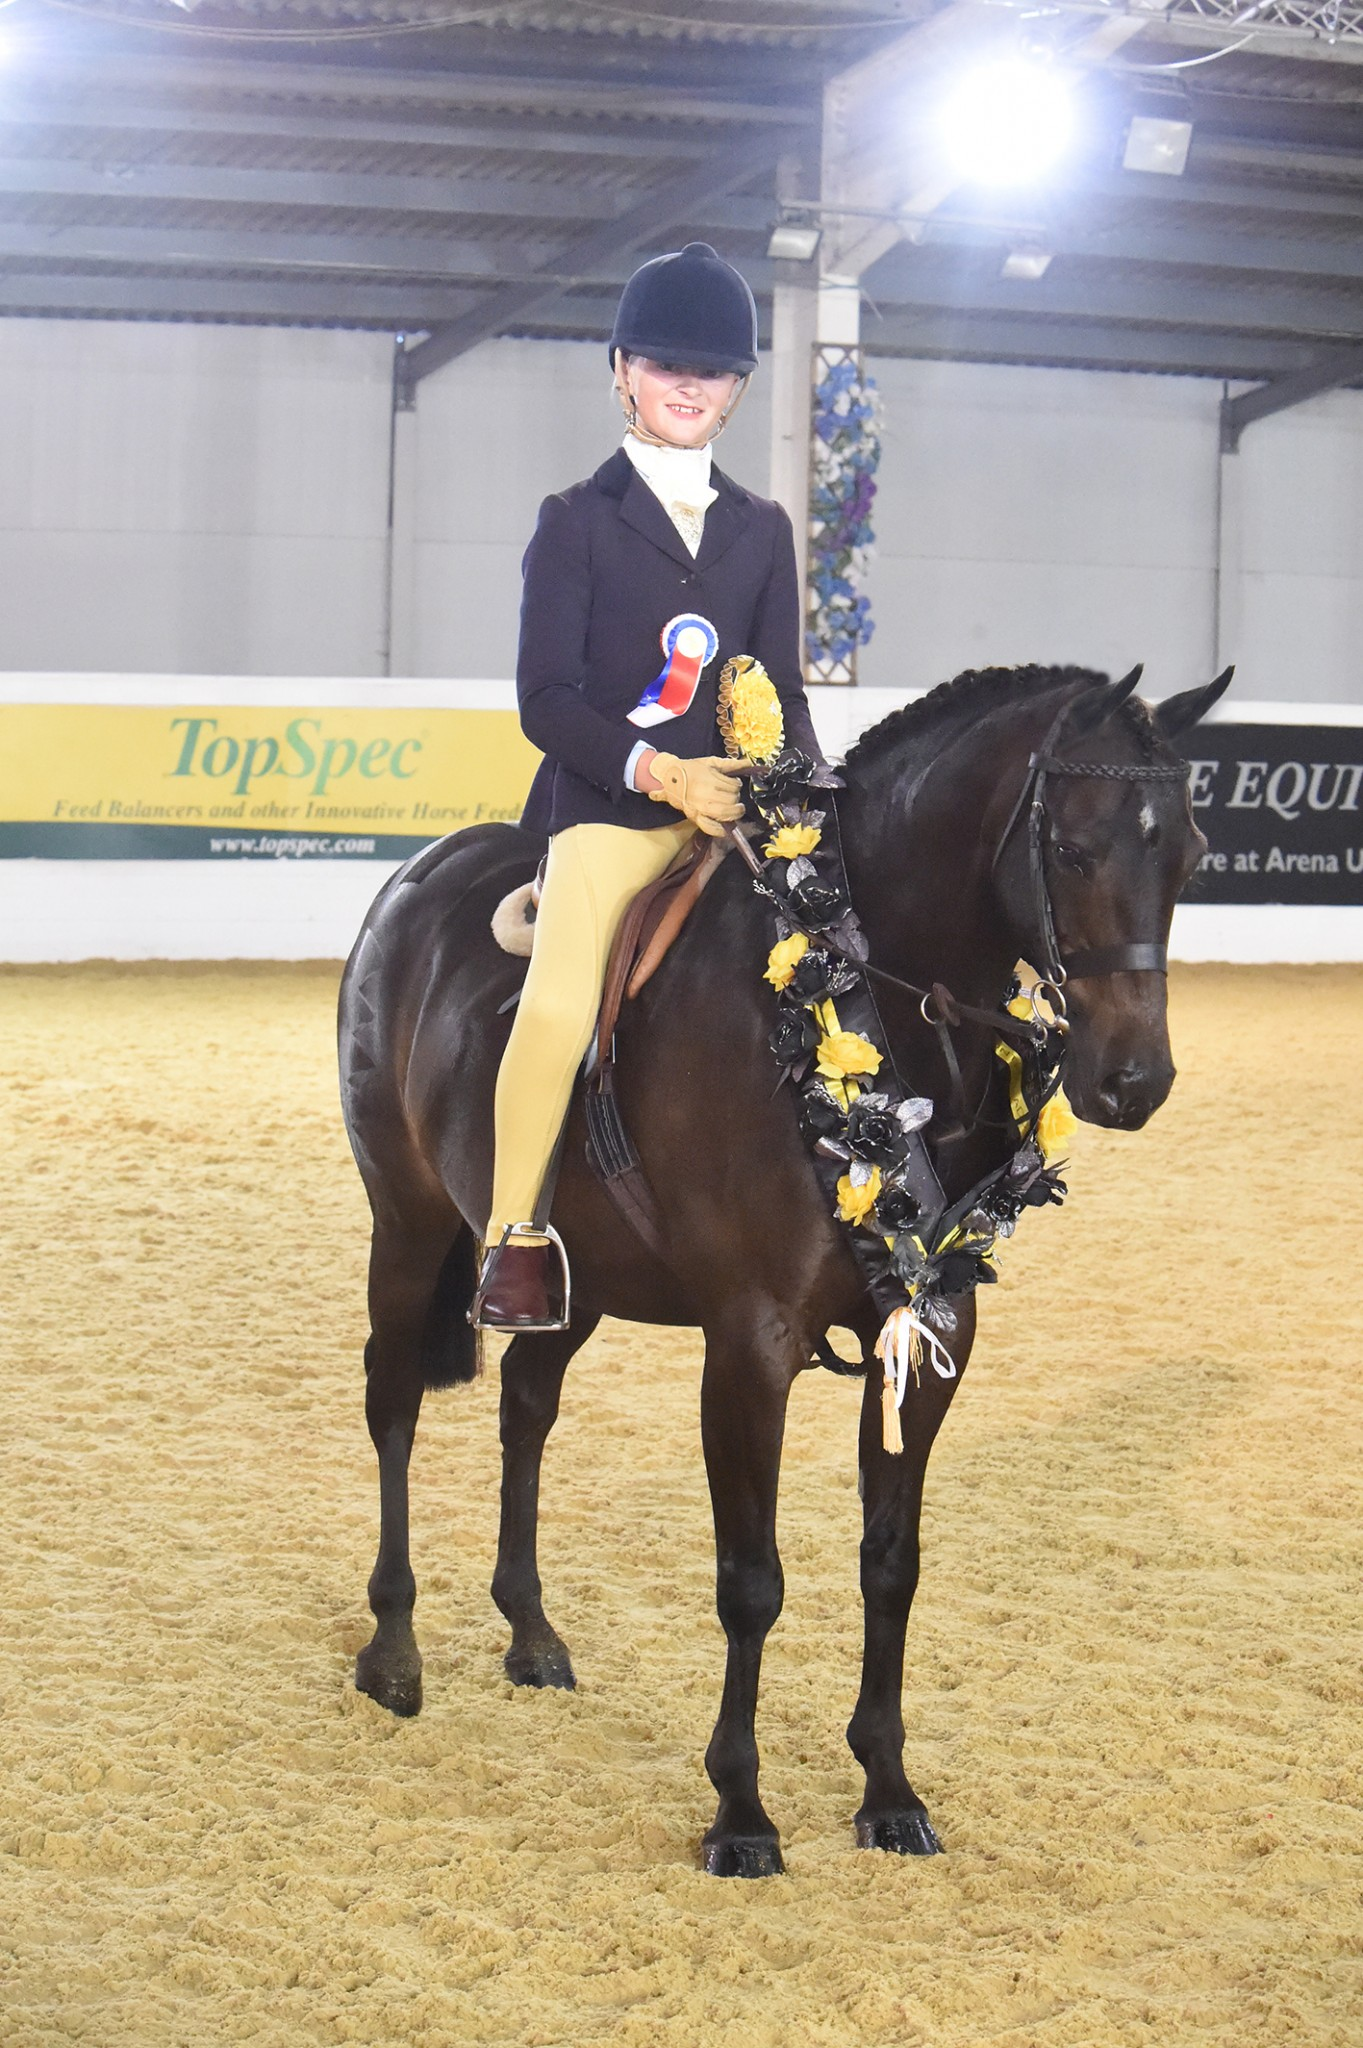 Lucille Bywater and Westfirle Mr Mcgregor - Lucille is Rider of the Year at BSPS Summer Championships